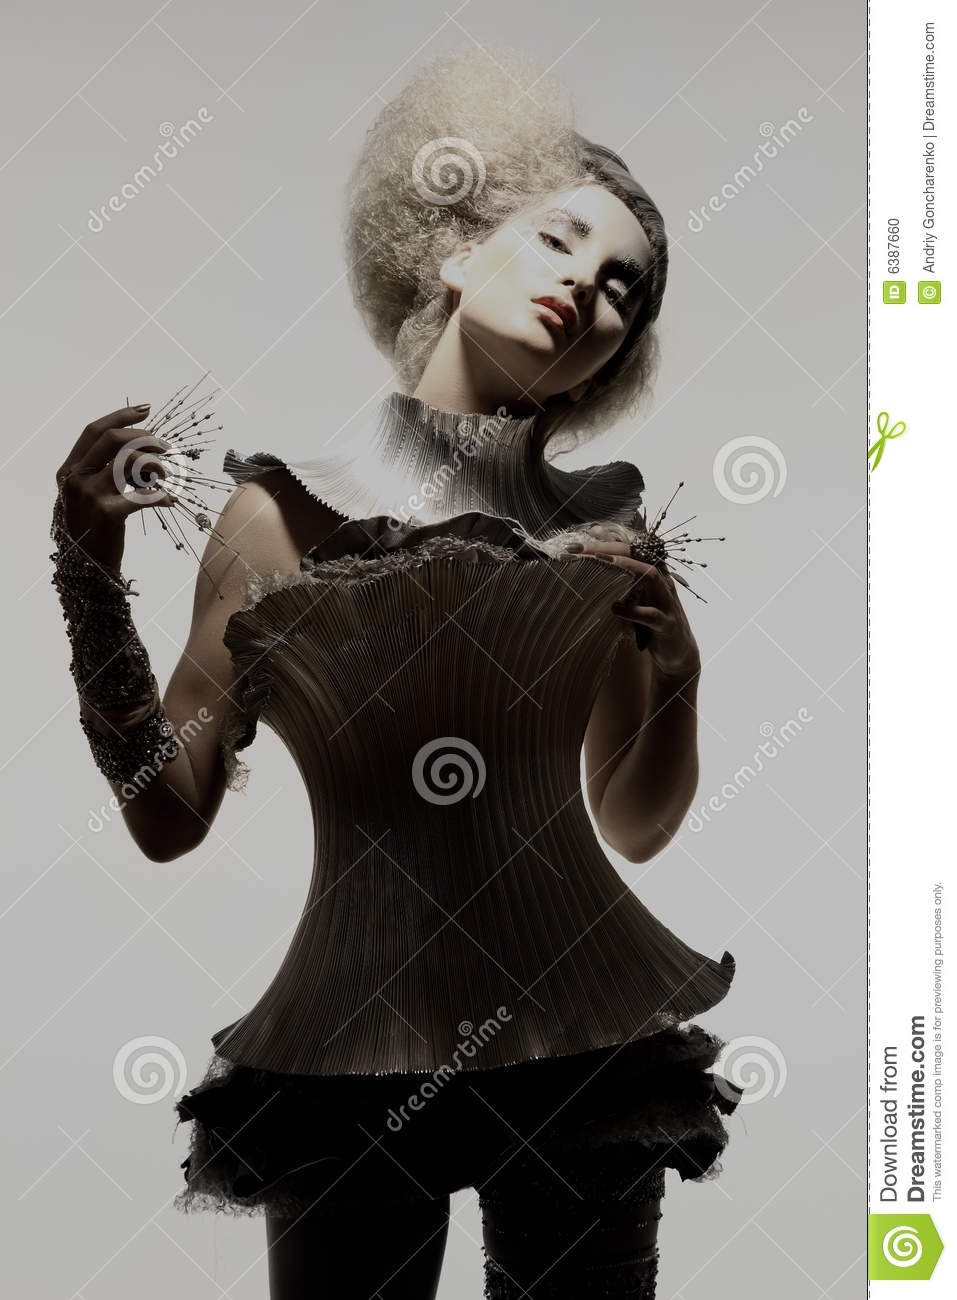 Model in expression dress and hair